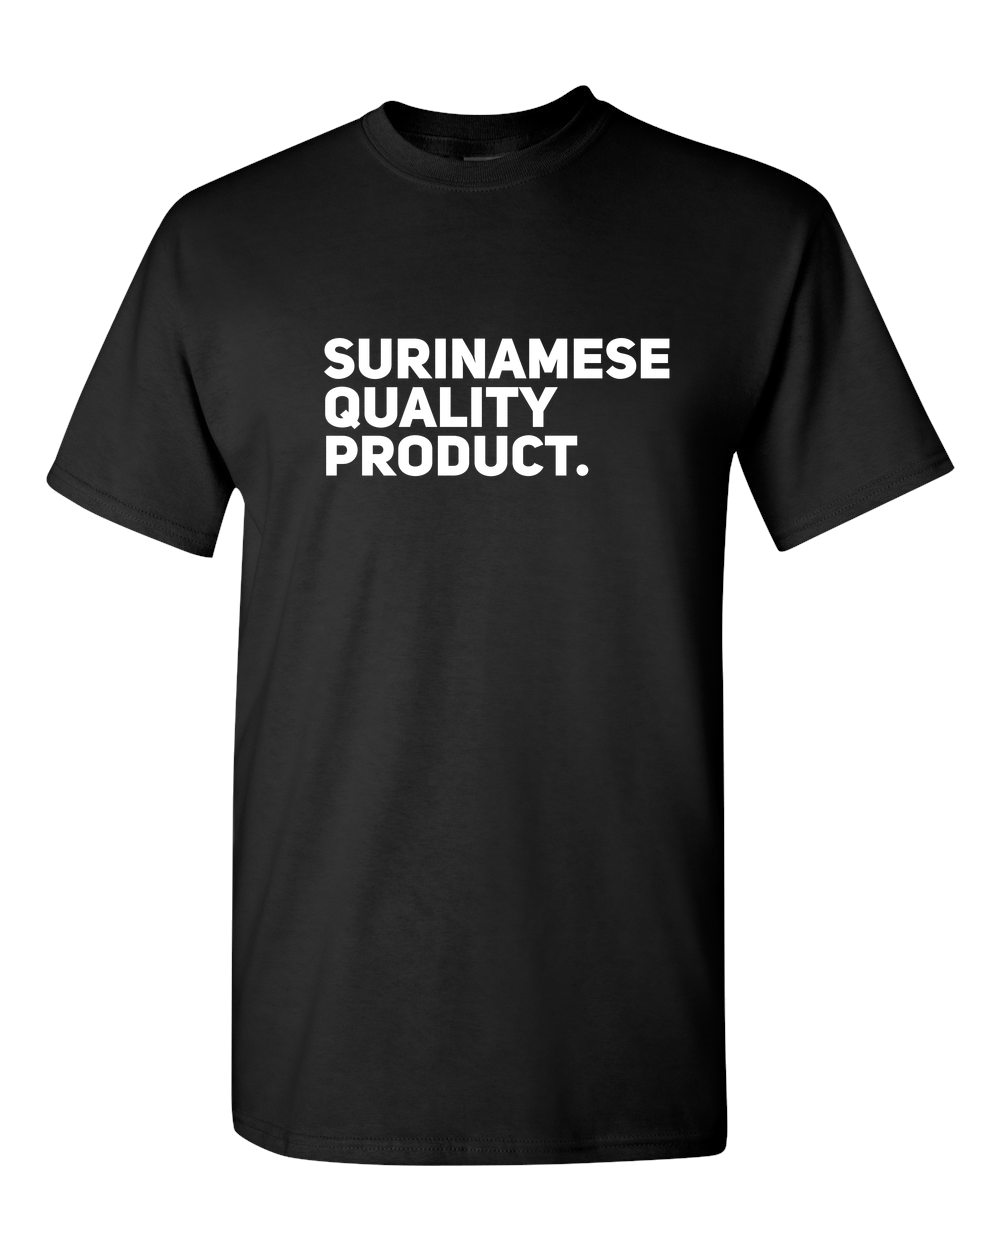 SURINAME Funny Adult Unisex T-Shirt